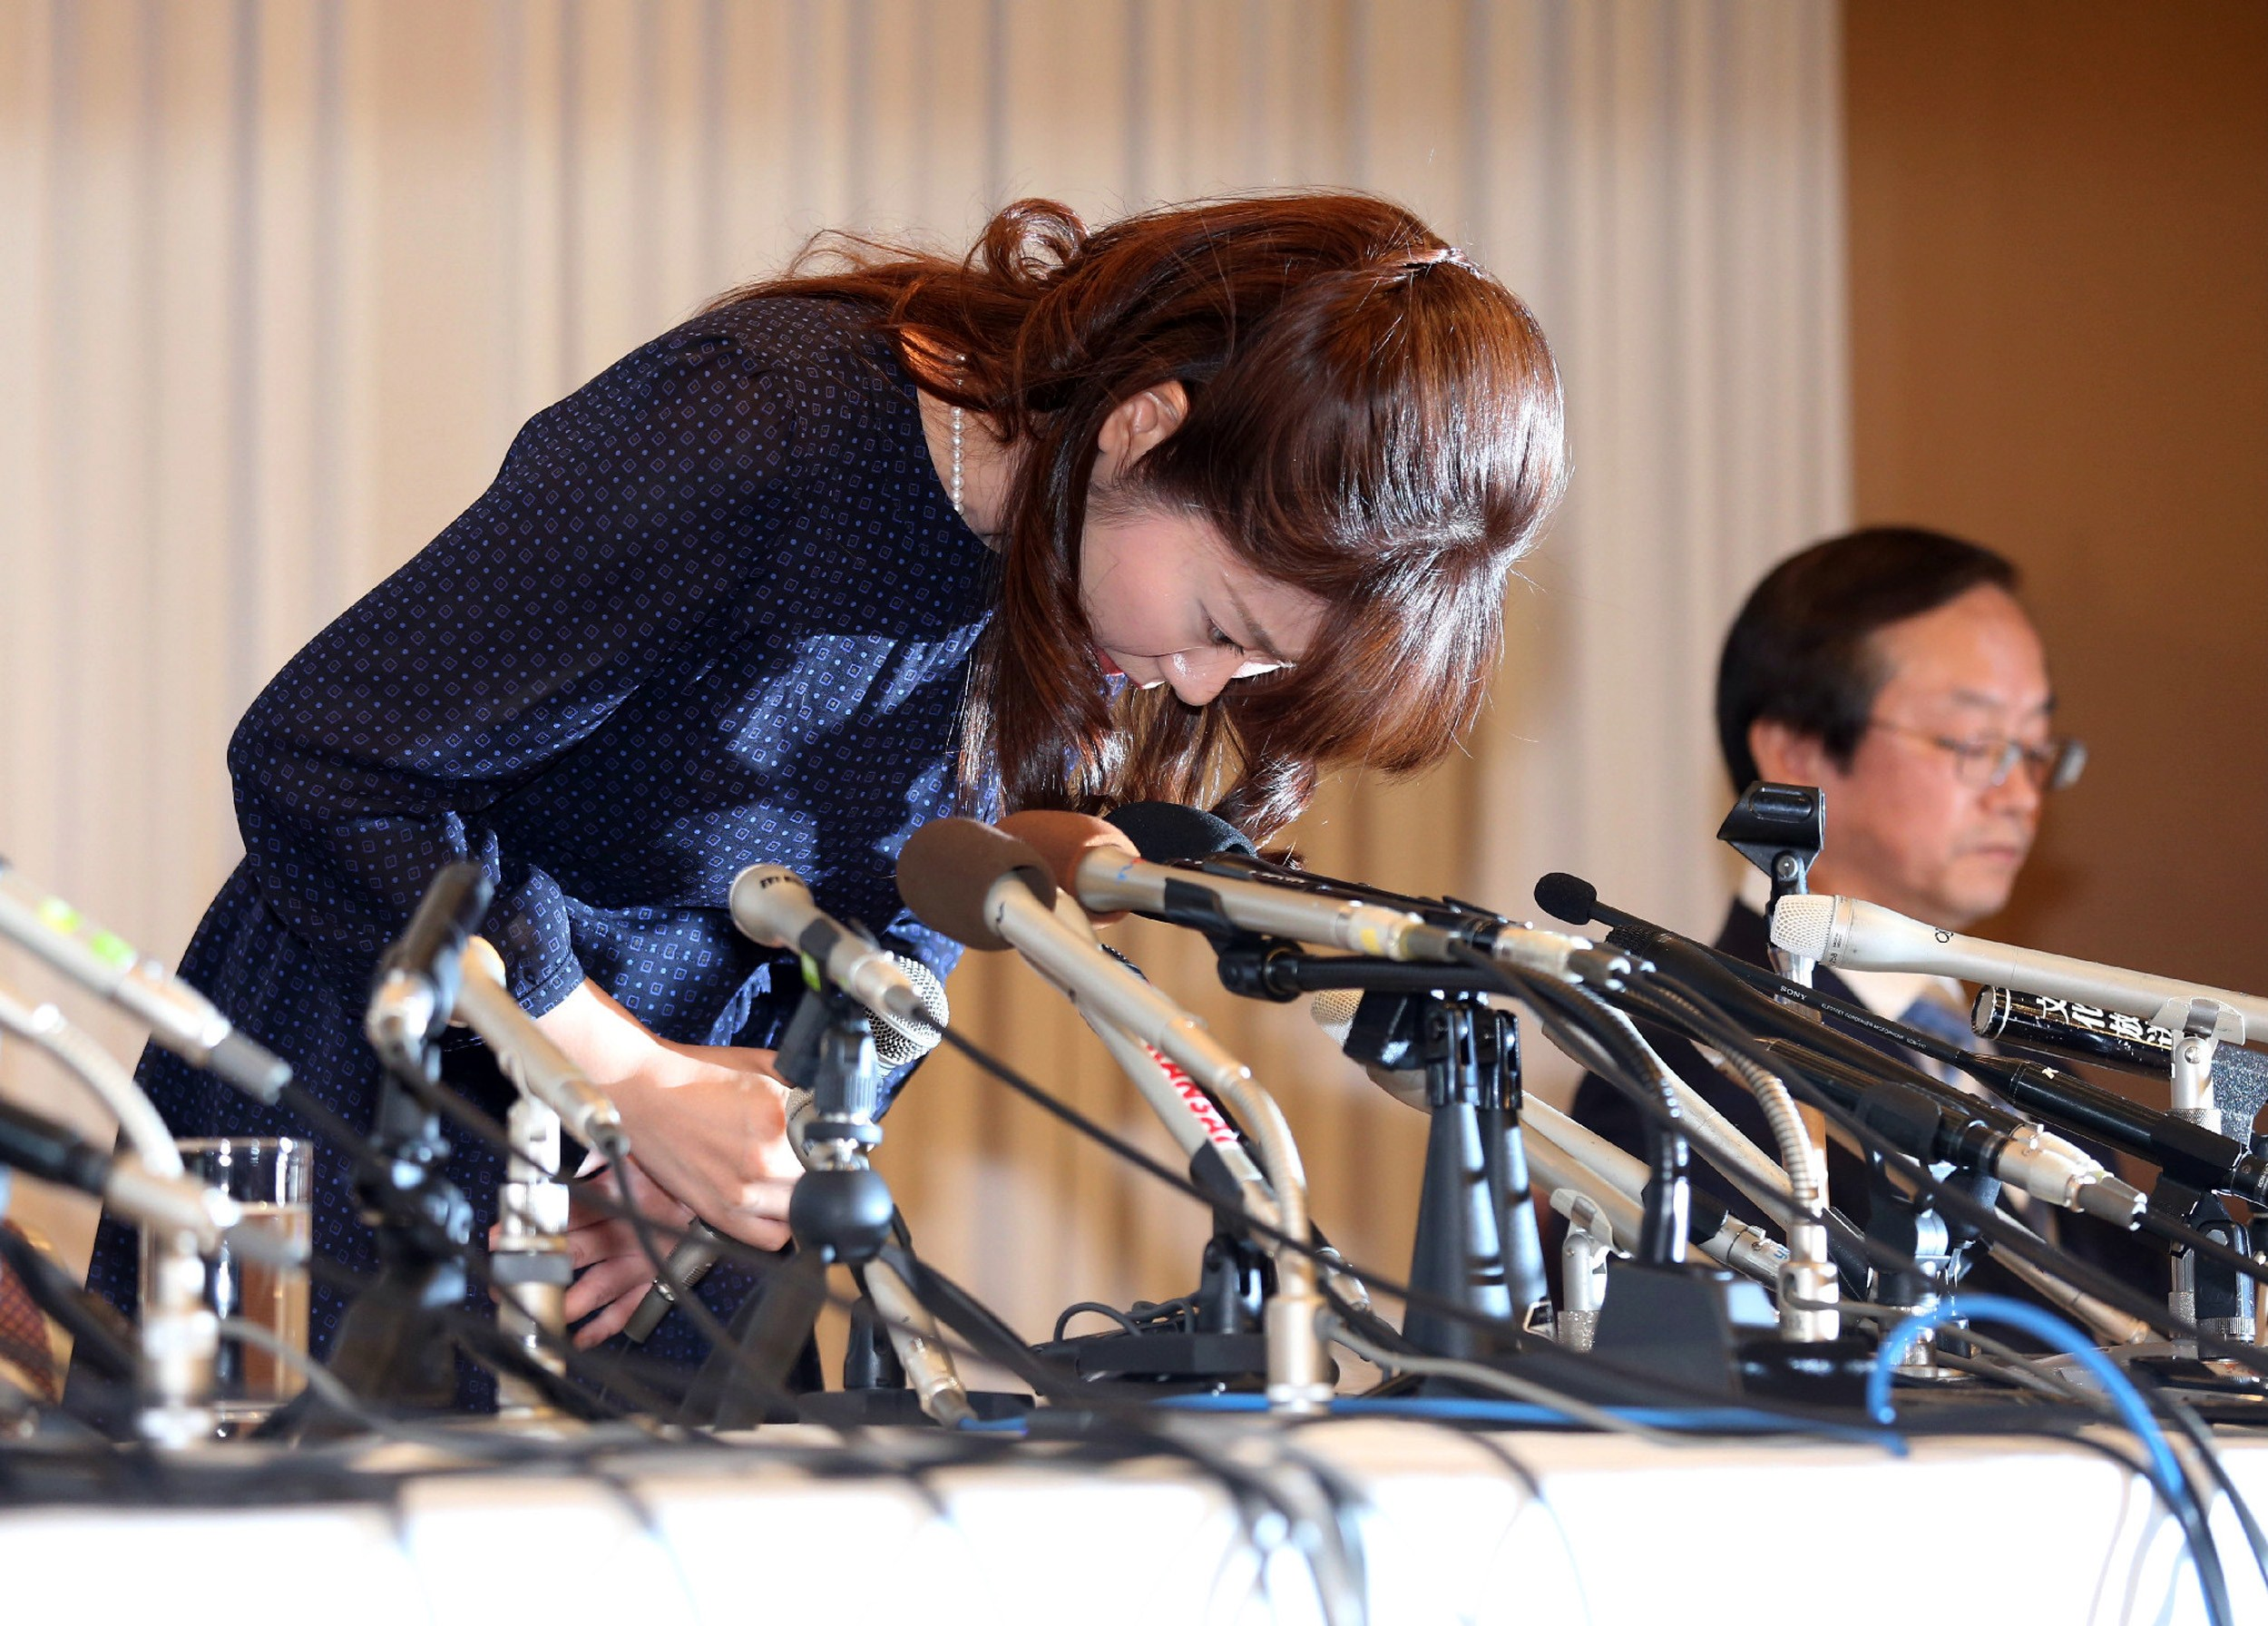 Haruko Obokata, a researcher at Japan's Riken Institute bows as she apologizes at a press conference in Osaka, Japan on April 9, 2014, following claims that her groundbreaking stem-cell study was fabricated